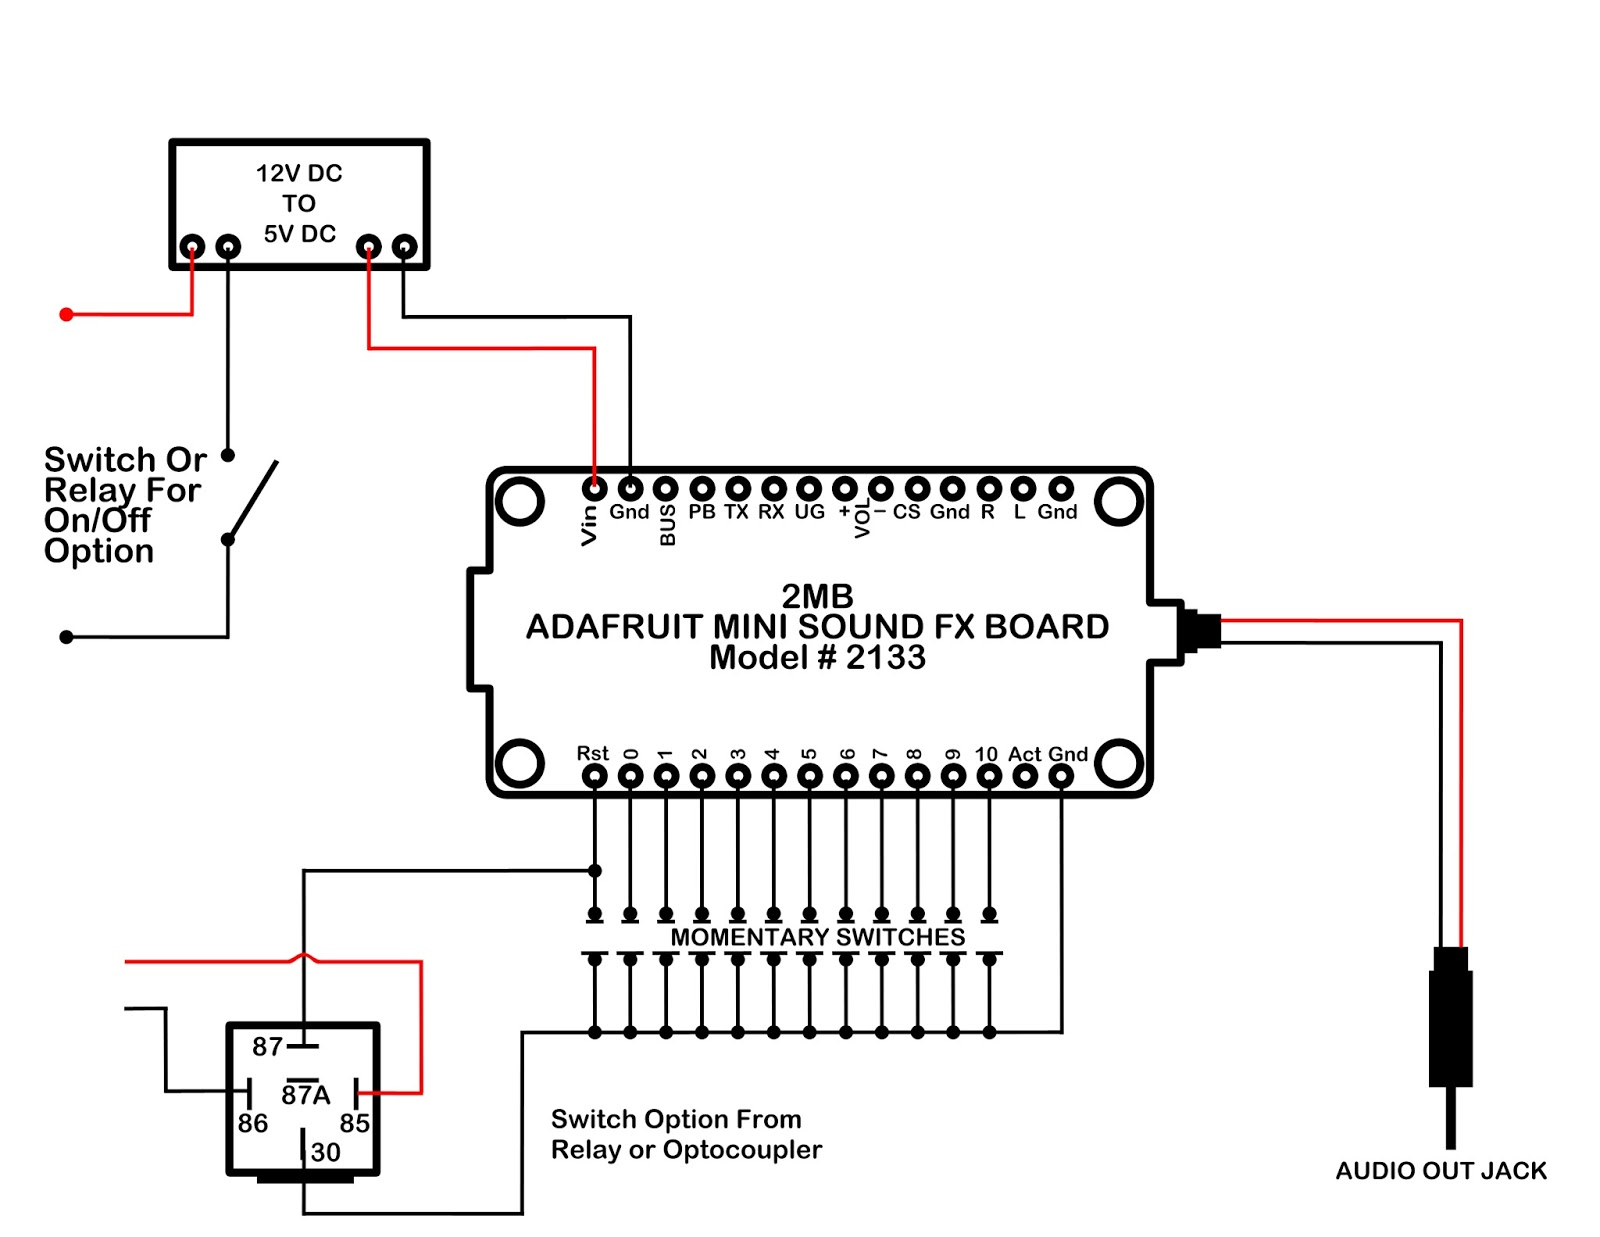 medium resolution of here is a little additional work done on the diagram to include a power on off switch and to use the option of either a relay or optocoupler as switch